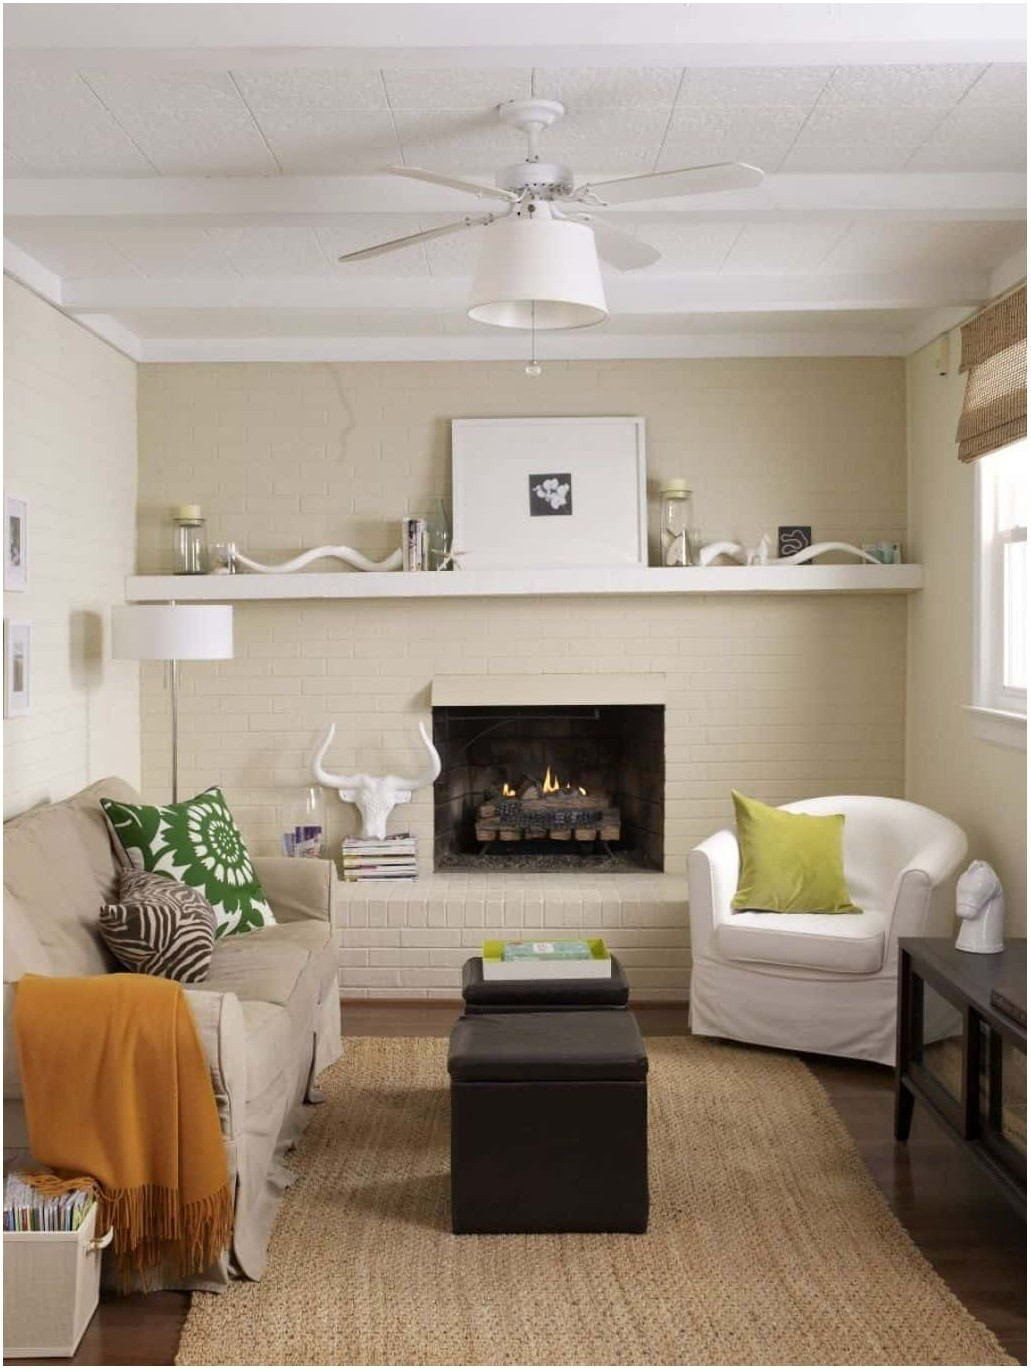 Small Living Room Color Schemes Wall Paint Ideas For Small Living Room Living Room In 2020 Small Living Rooms Small Living Room Design Small Living Room #small #living #room #paint